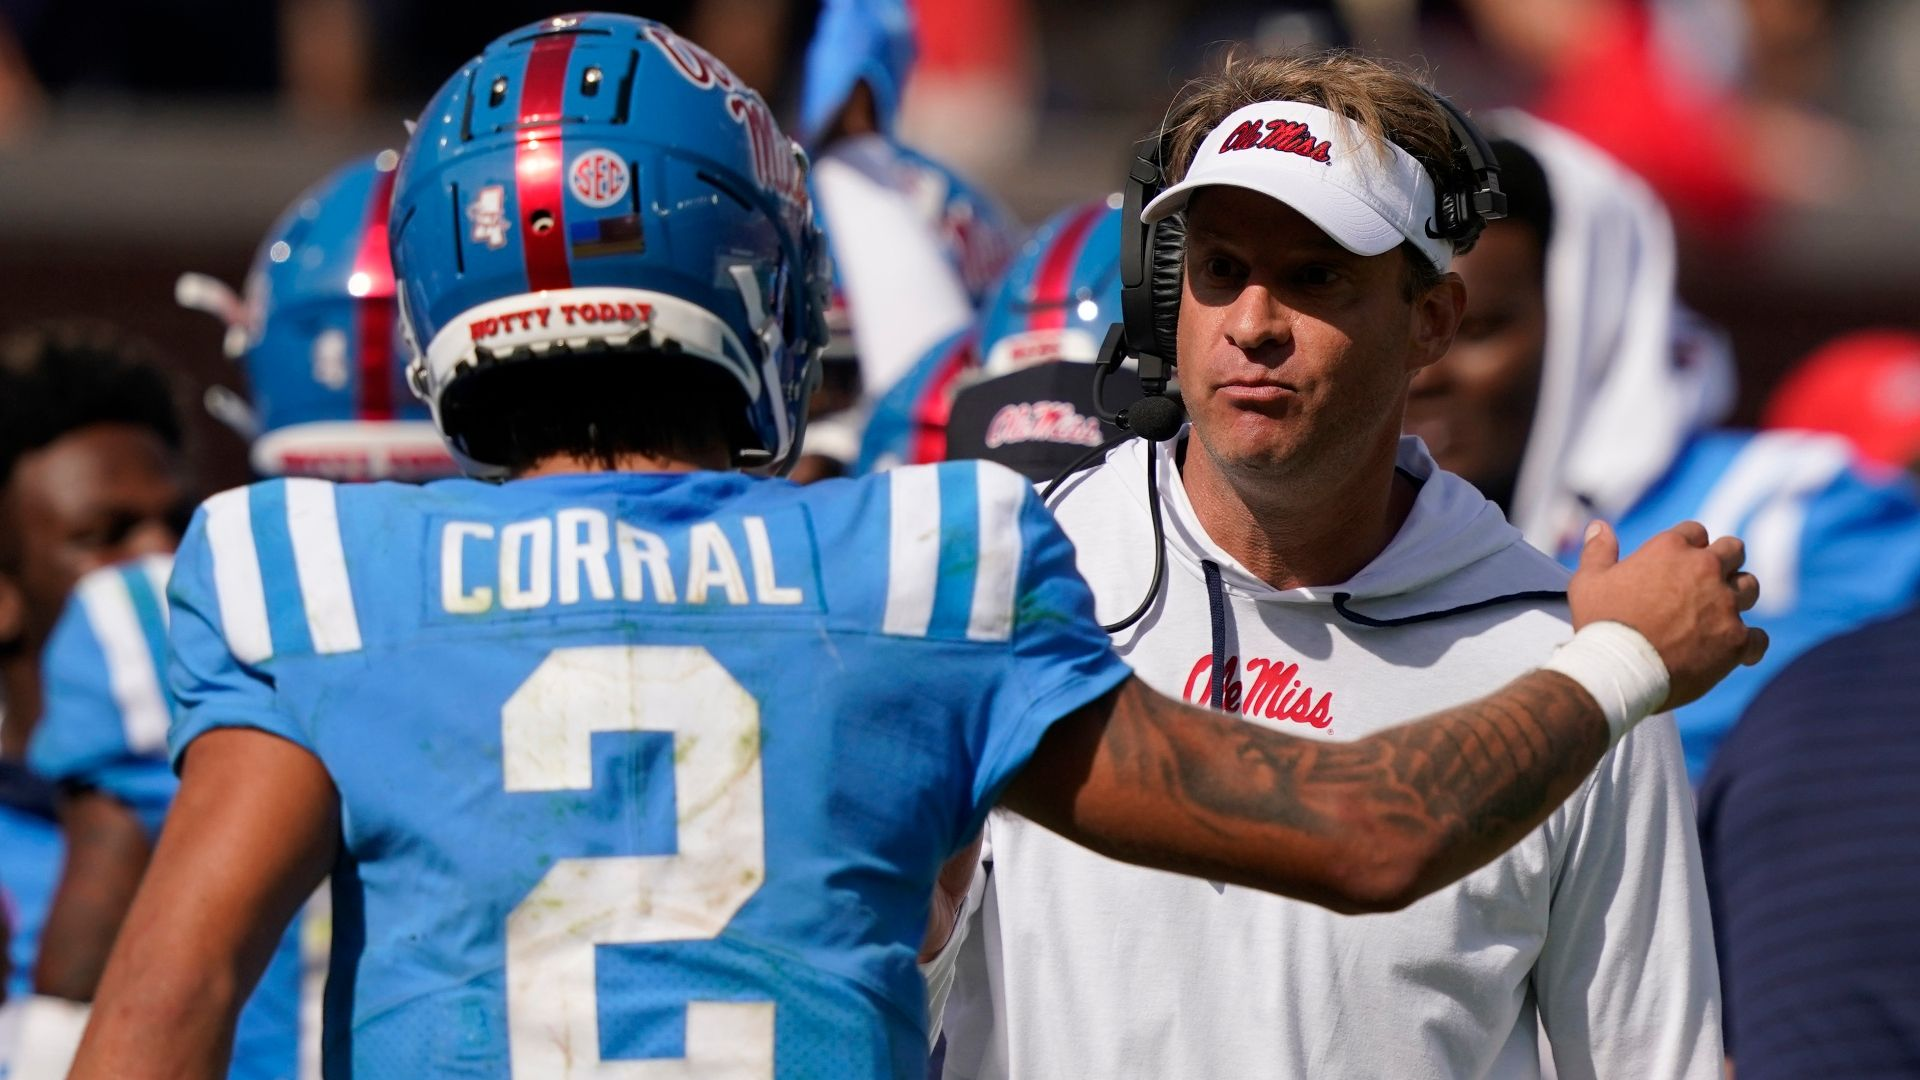 Kiffin believes penalties are holding the Rebels back